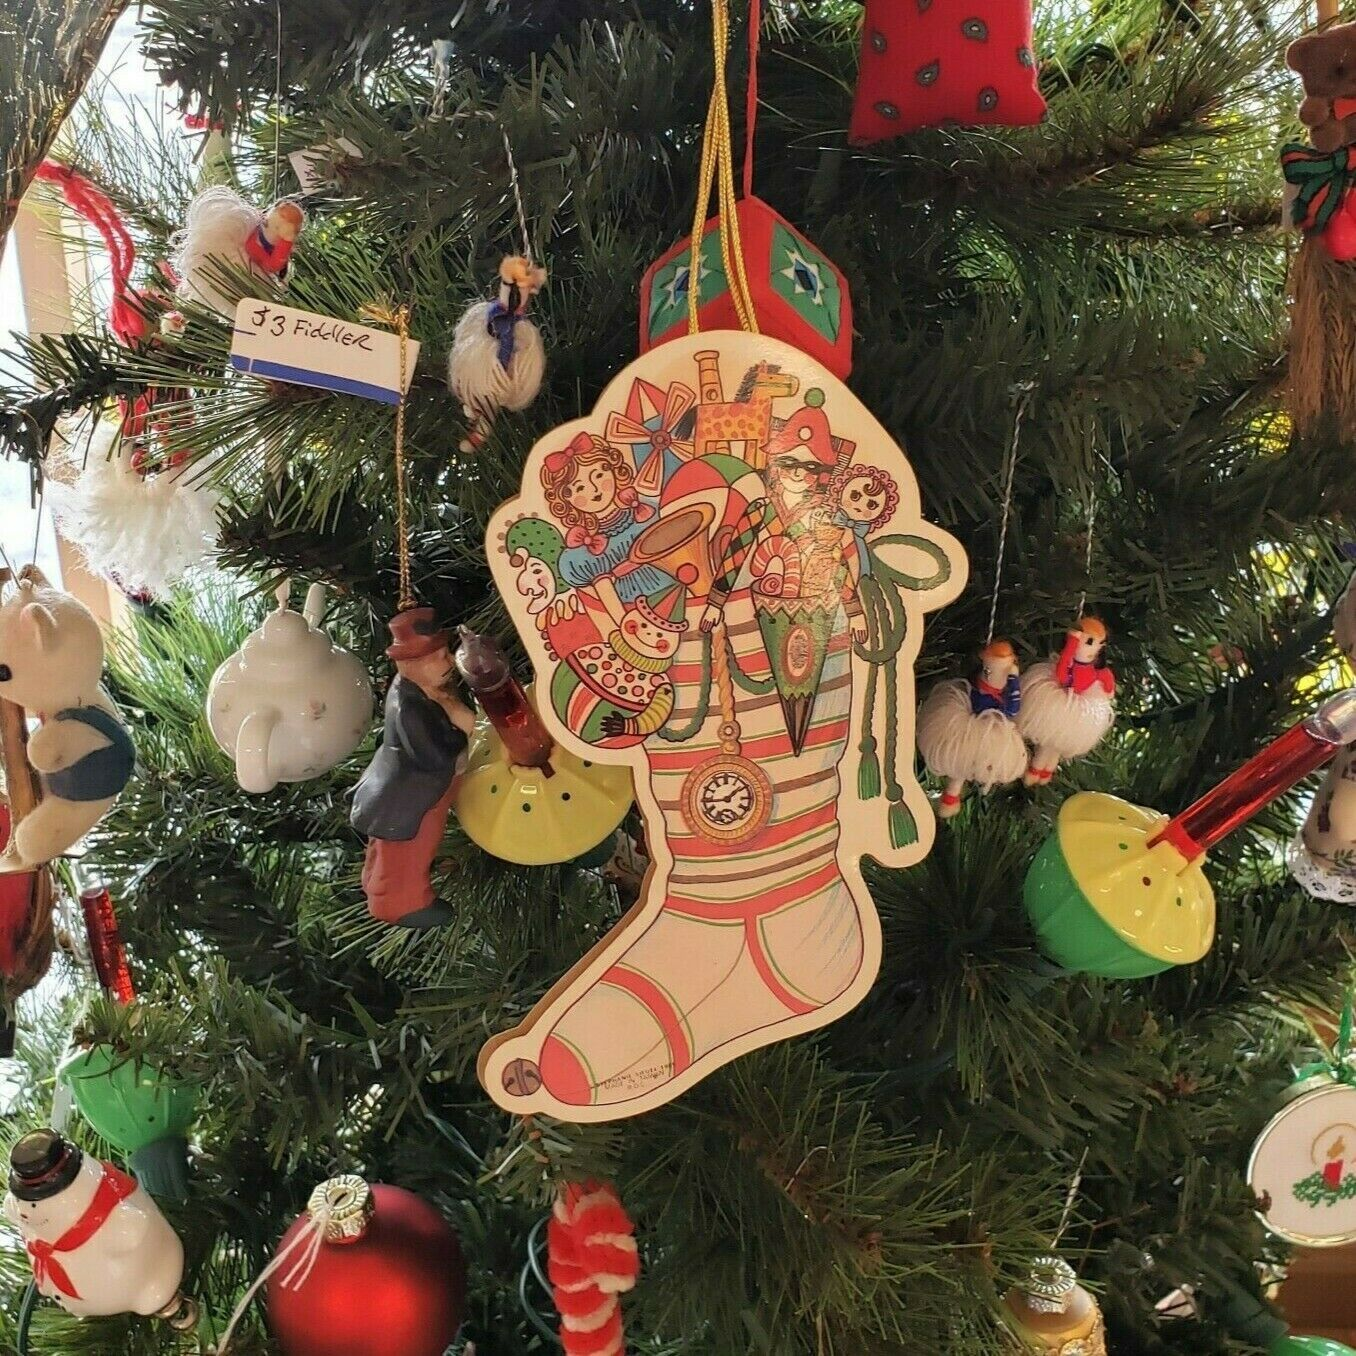 Taiwan Christmas 2020 Details about Stephanie Siegel Ornament Christmas Stocking of Toys